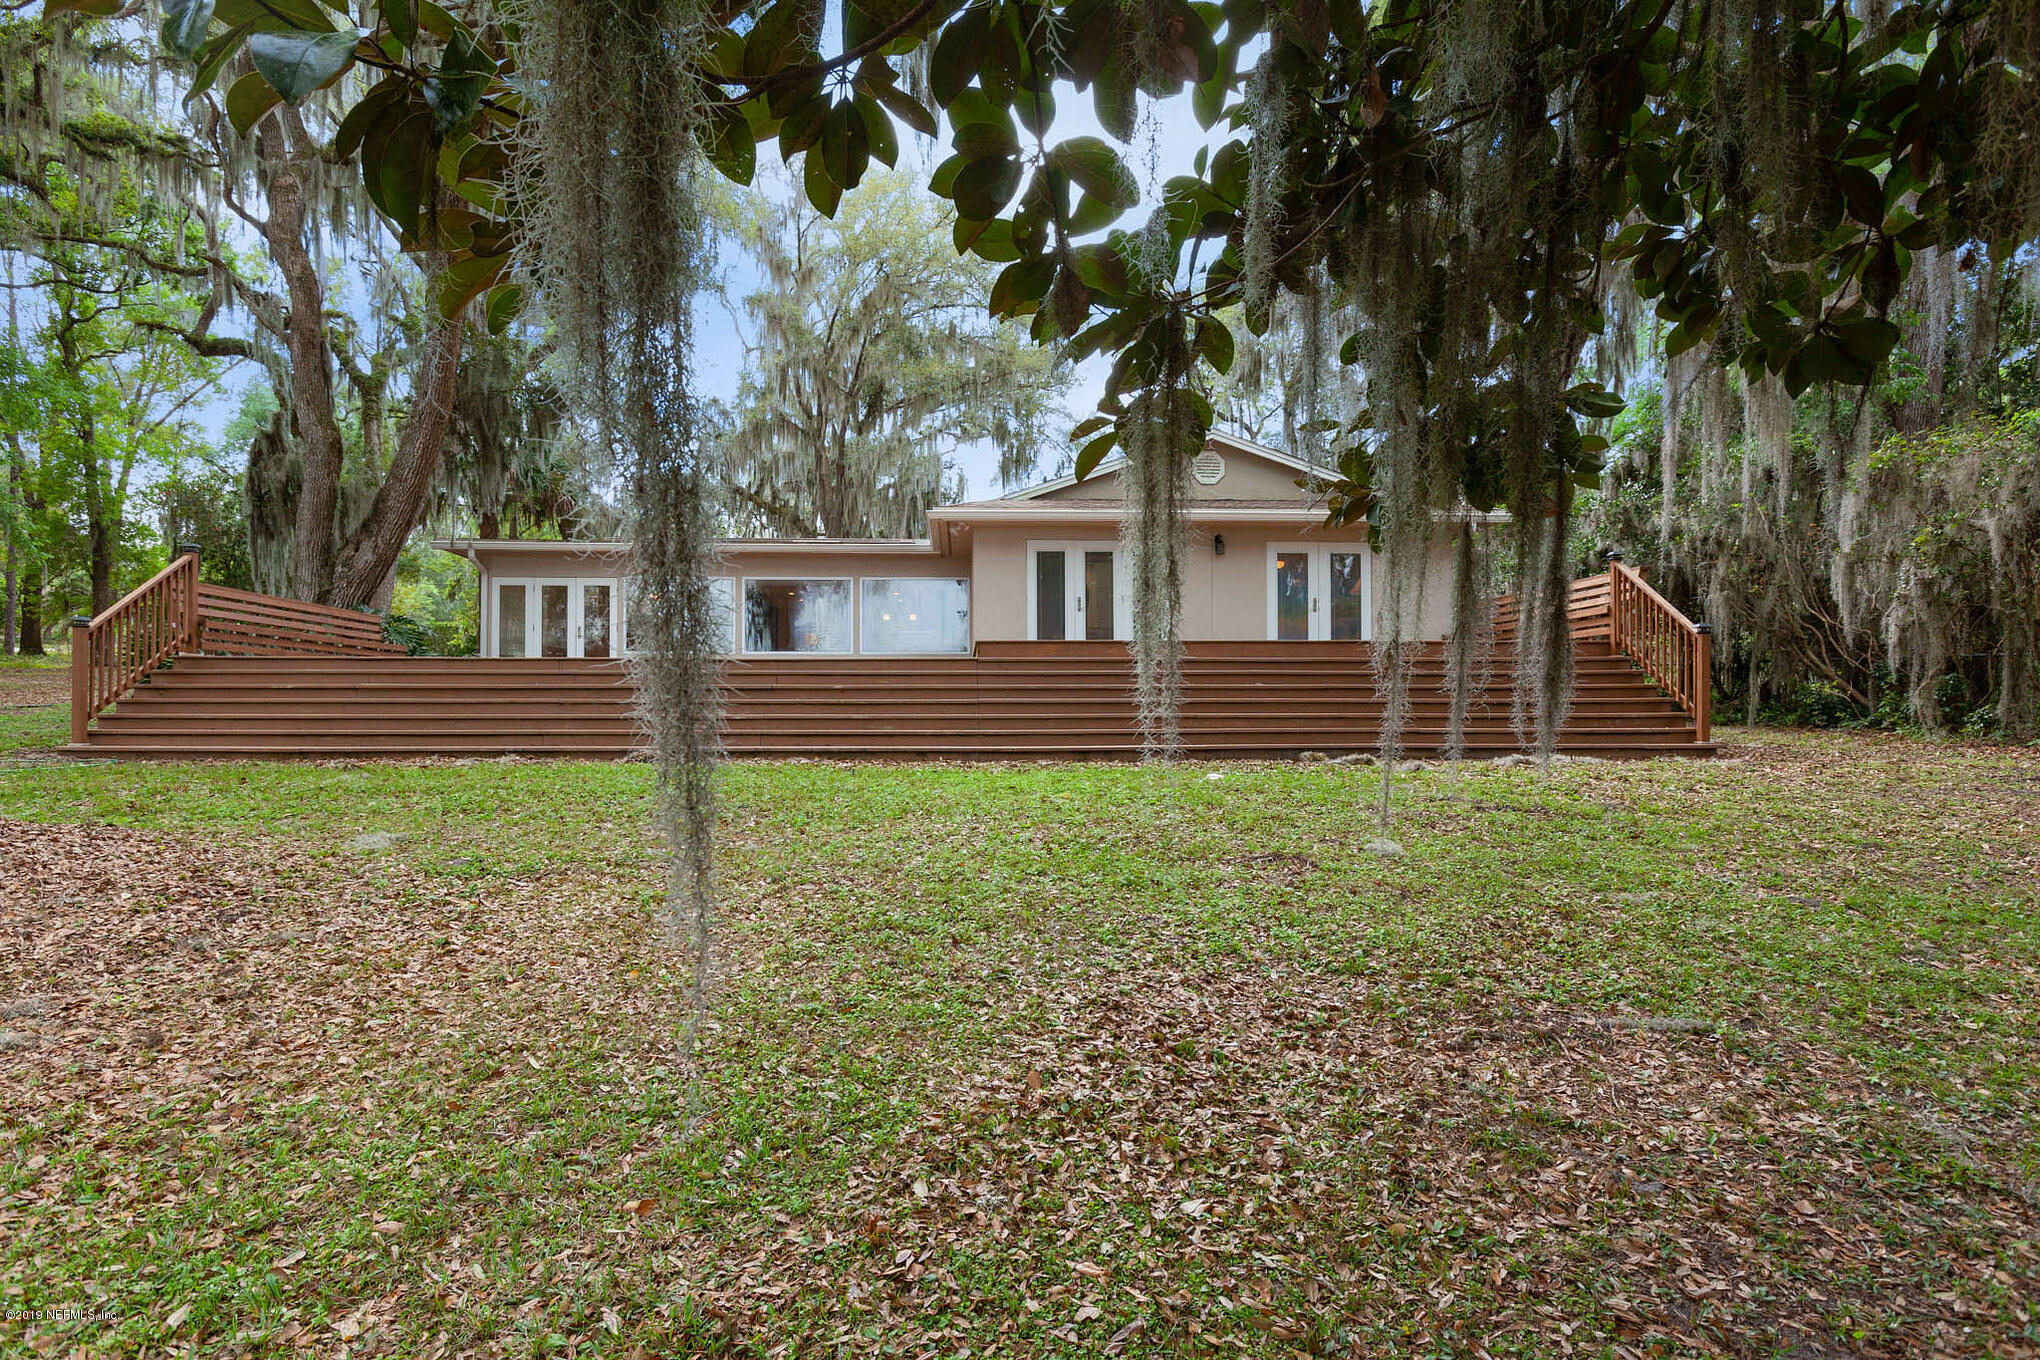 315 28TH, MELROSE, FLORIDA 32666, 4 Bedrooms Bedrooms, ,3 BathroomsBathrooms,Residential,For sale,28TH,992106